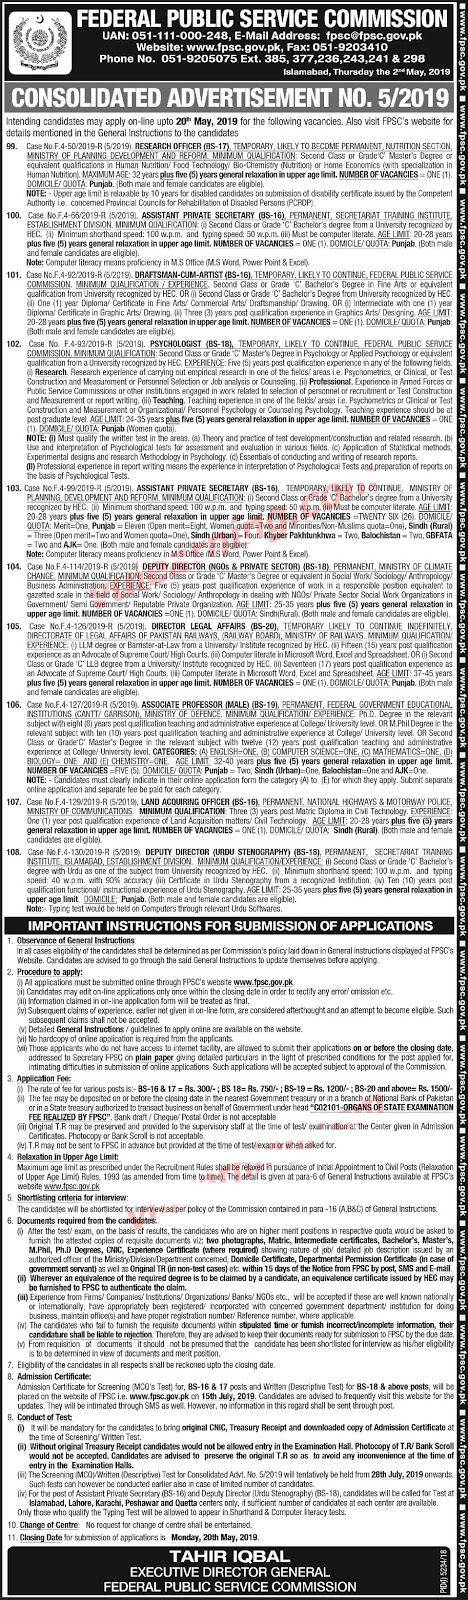 FPSC Jobs Advertisement May 2019  Latest Vacancies 39 in Multiple Departments of Federal Government